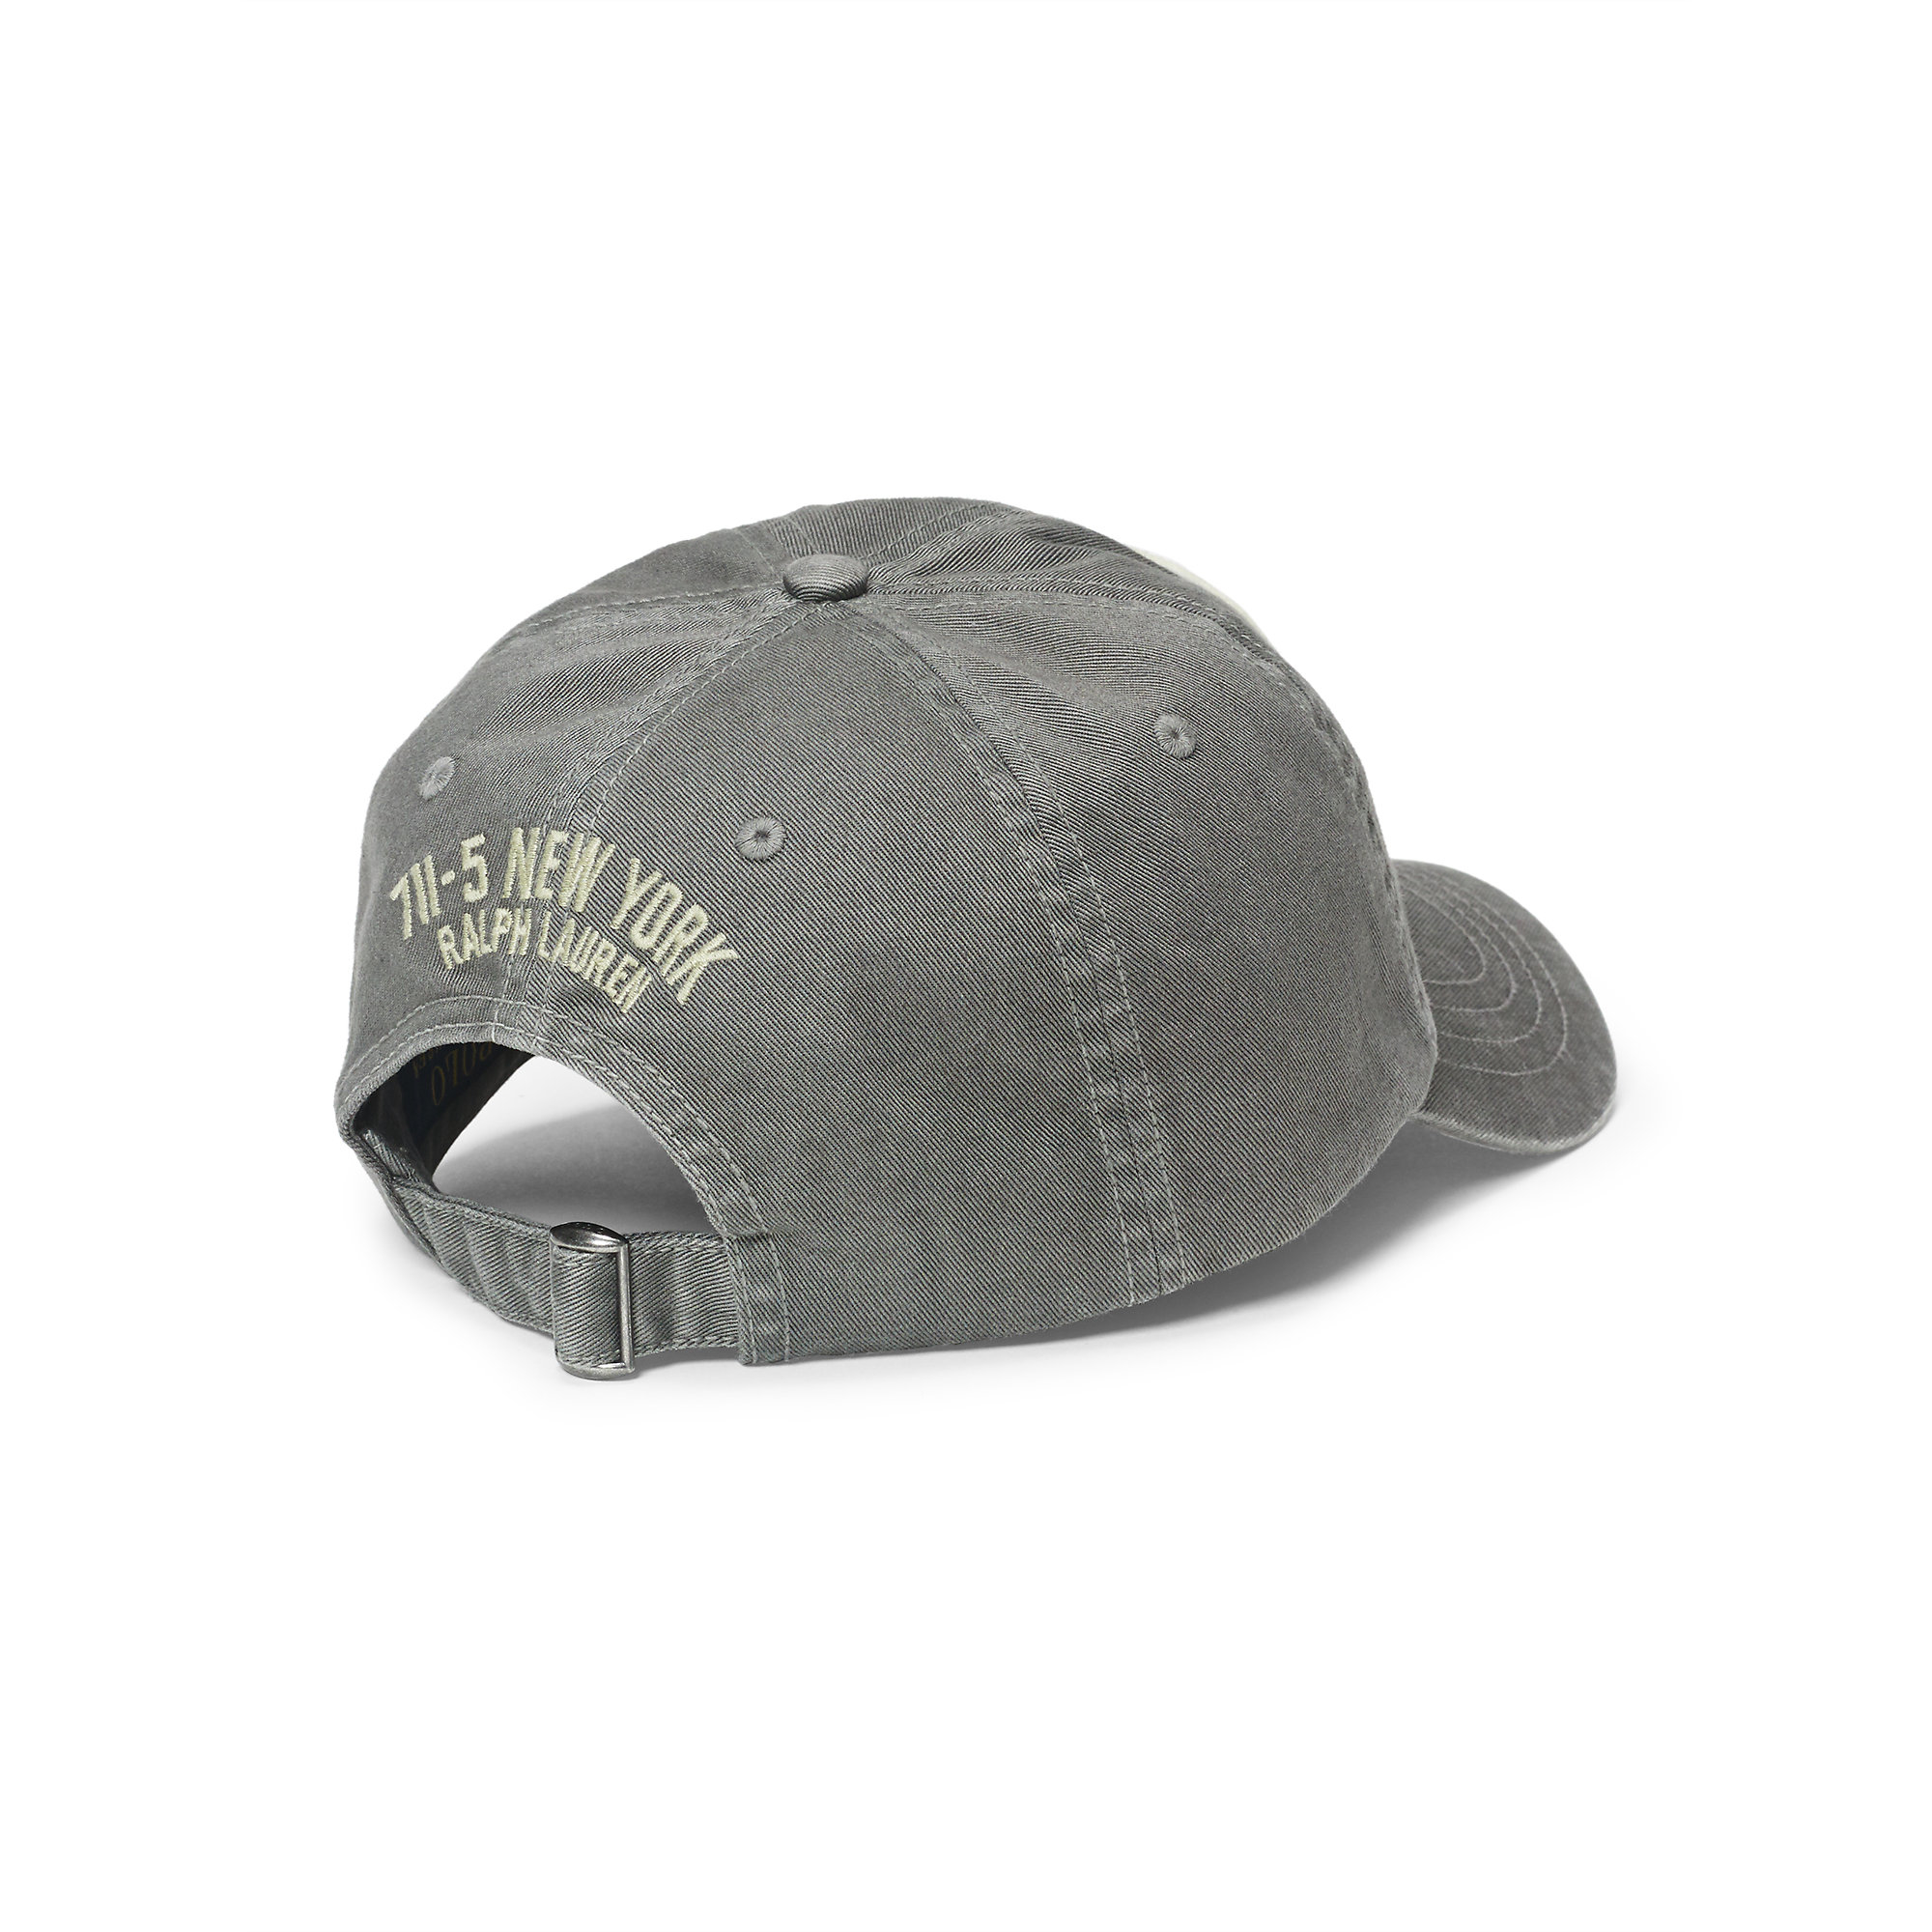 08725838be4ec Lyst - Polo Ralph Lauren Patch Chino Baseball Cap in Gray for Men